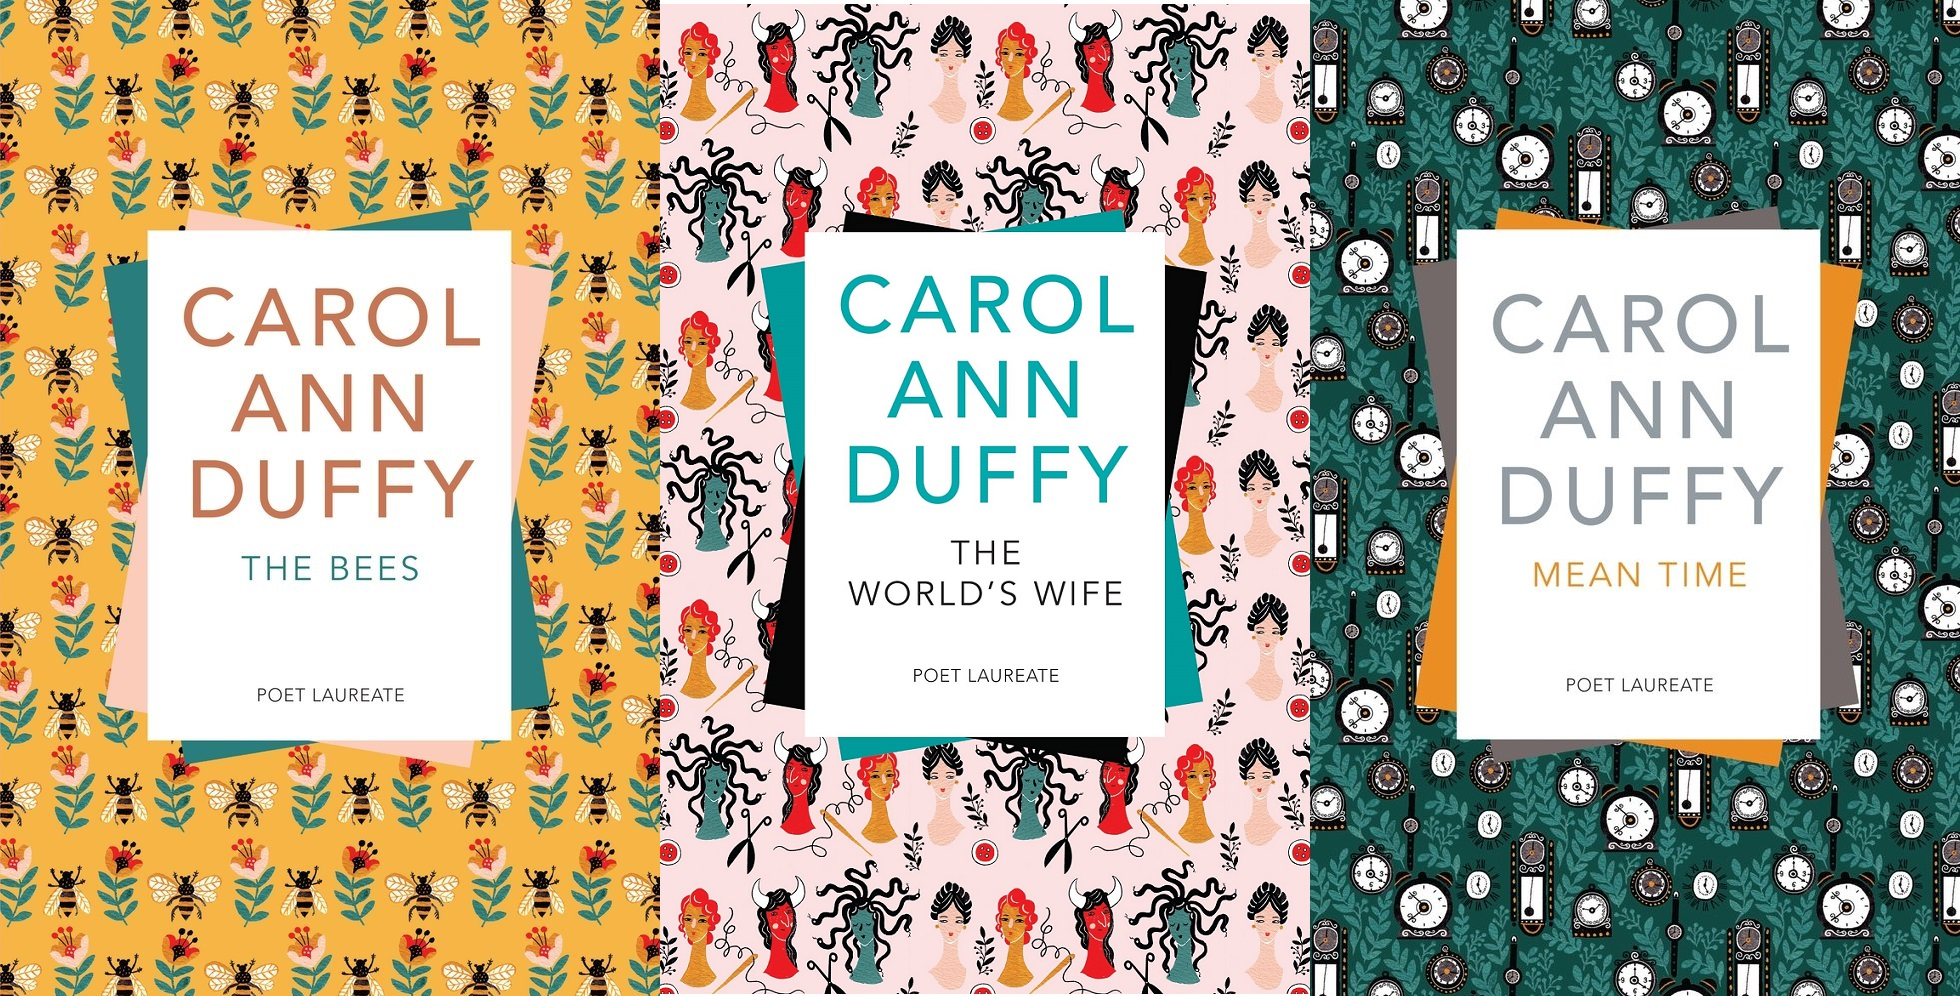 Carol Ann Duffy's book covers, left to right: The Bees, The World's Wife, Mean Time